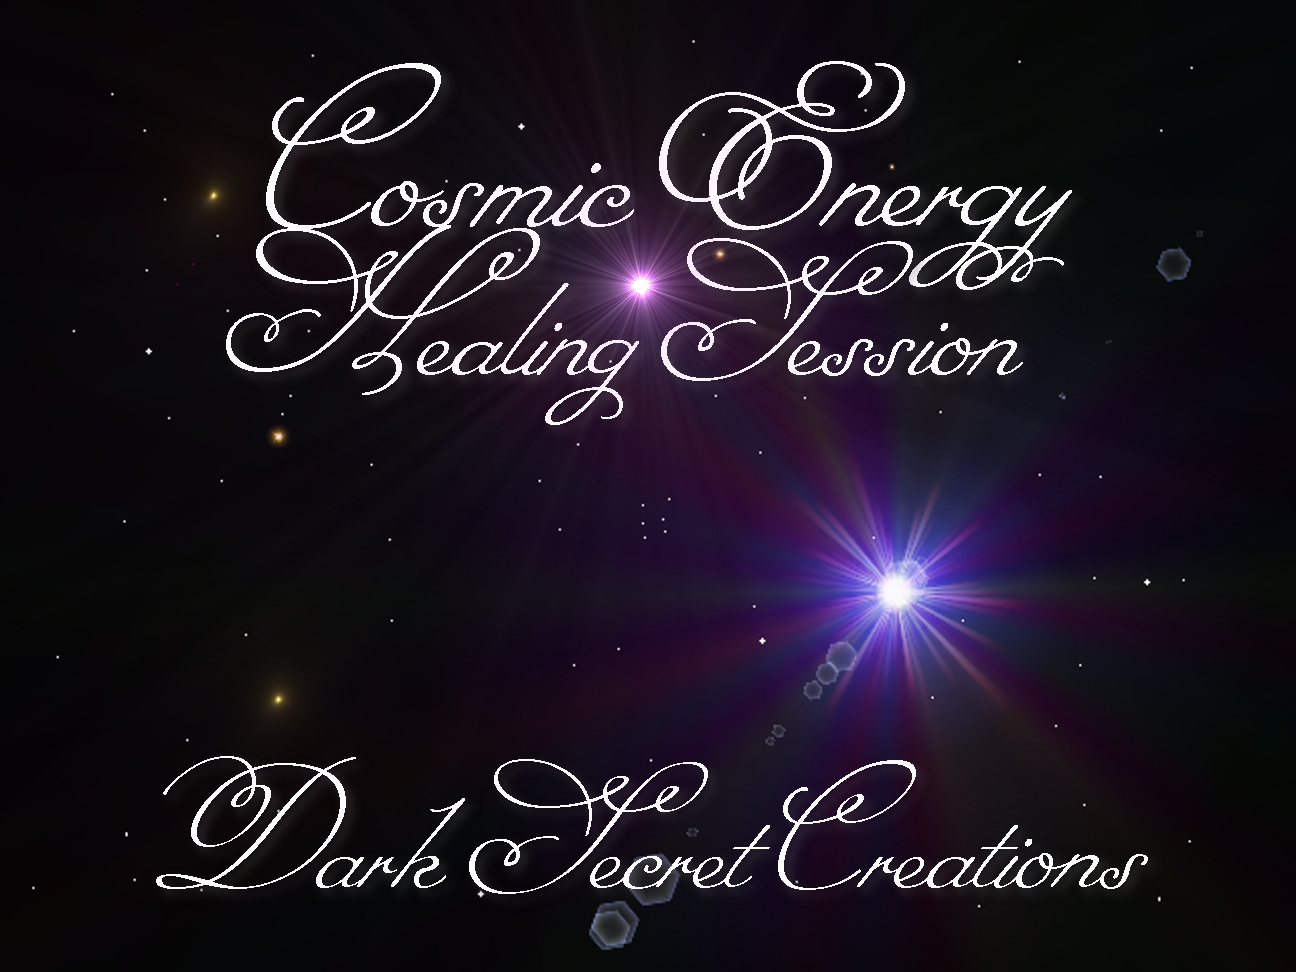 Cosmic energy healing session